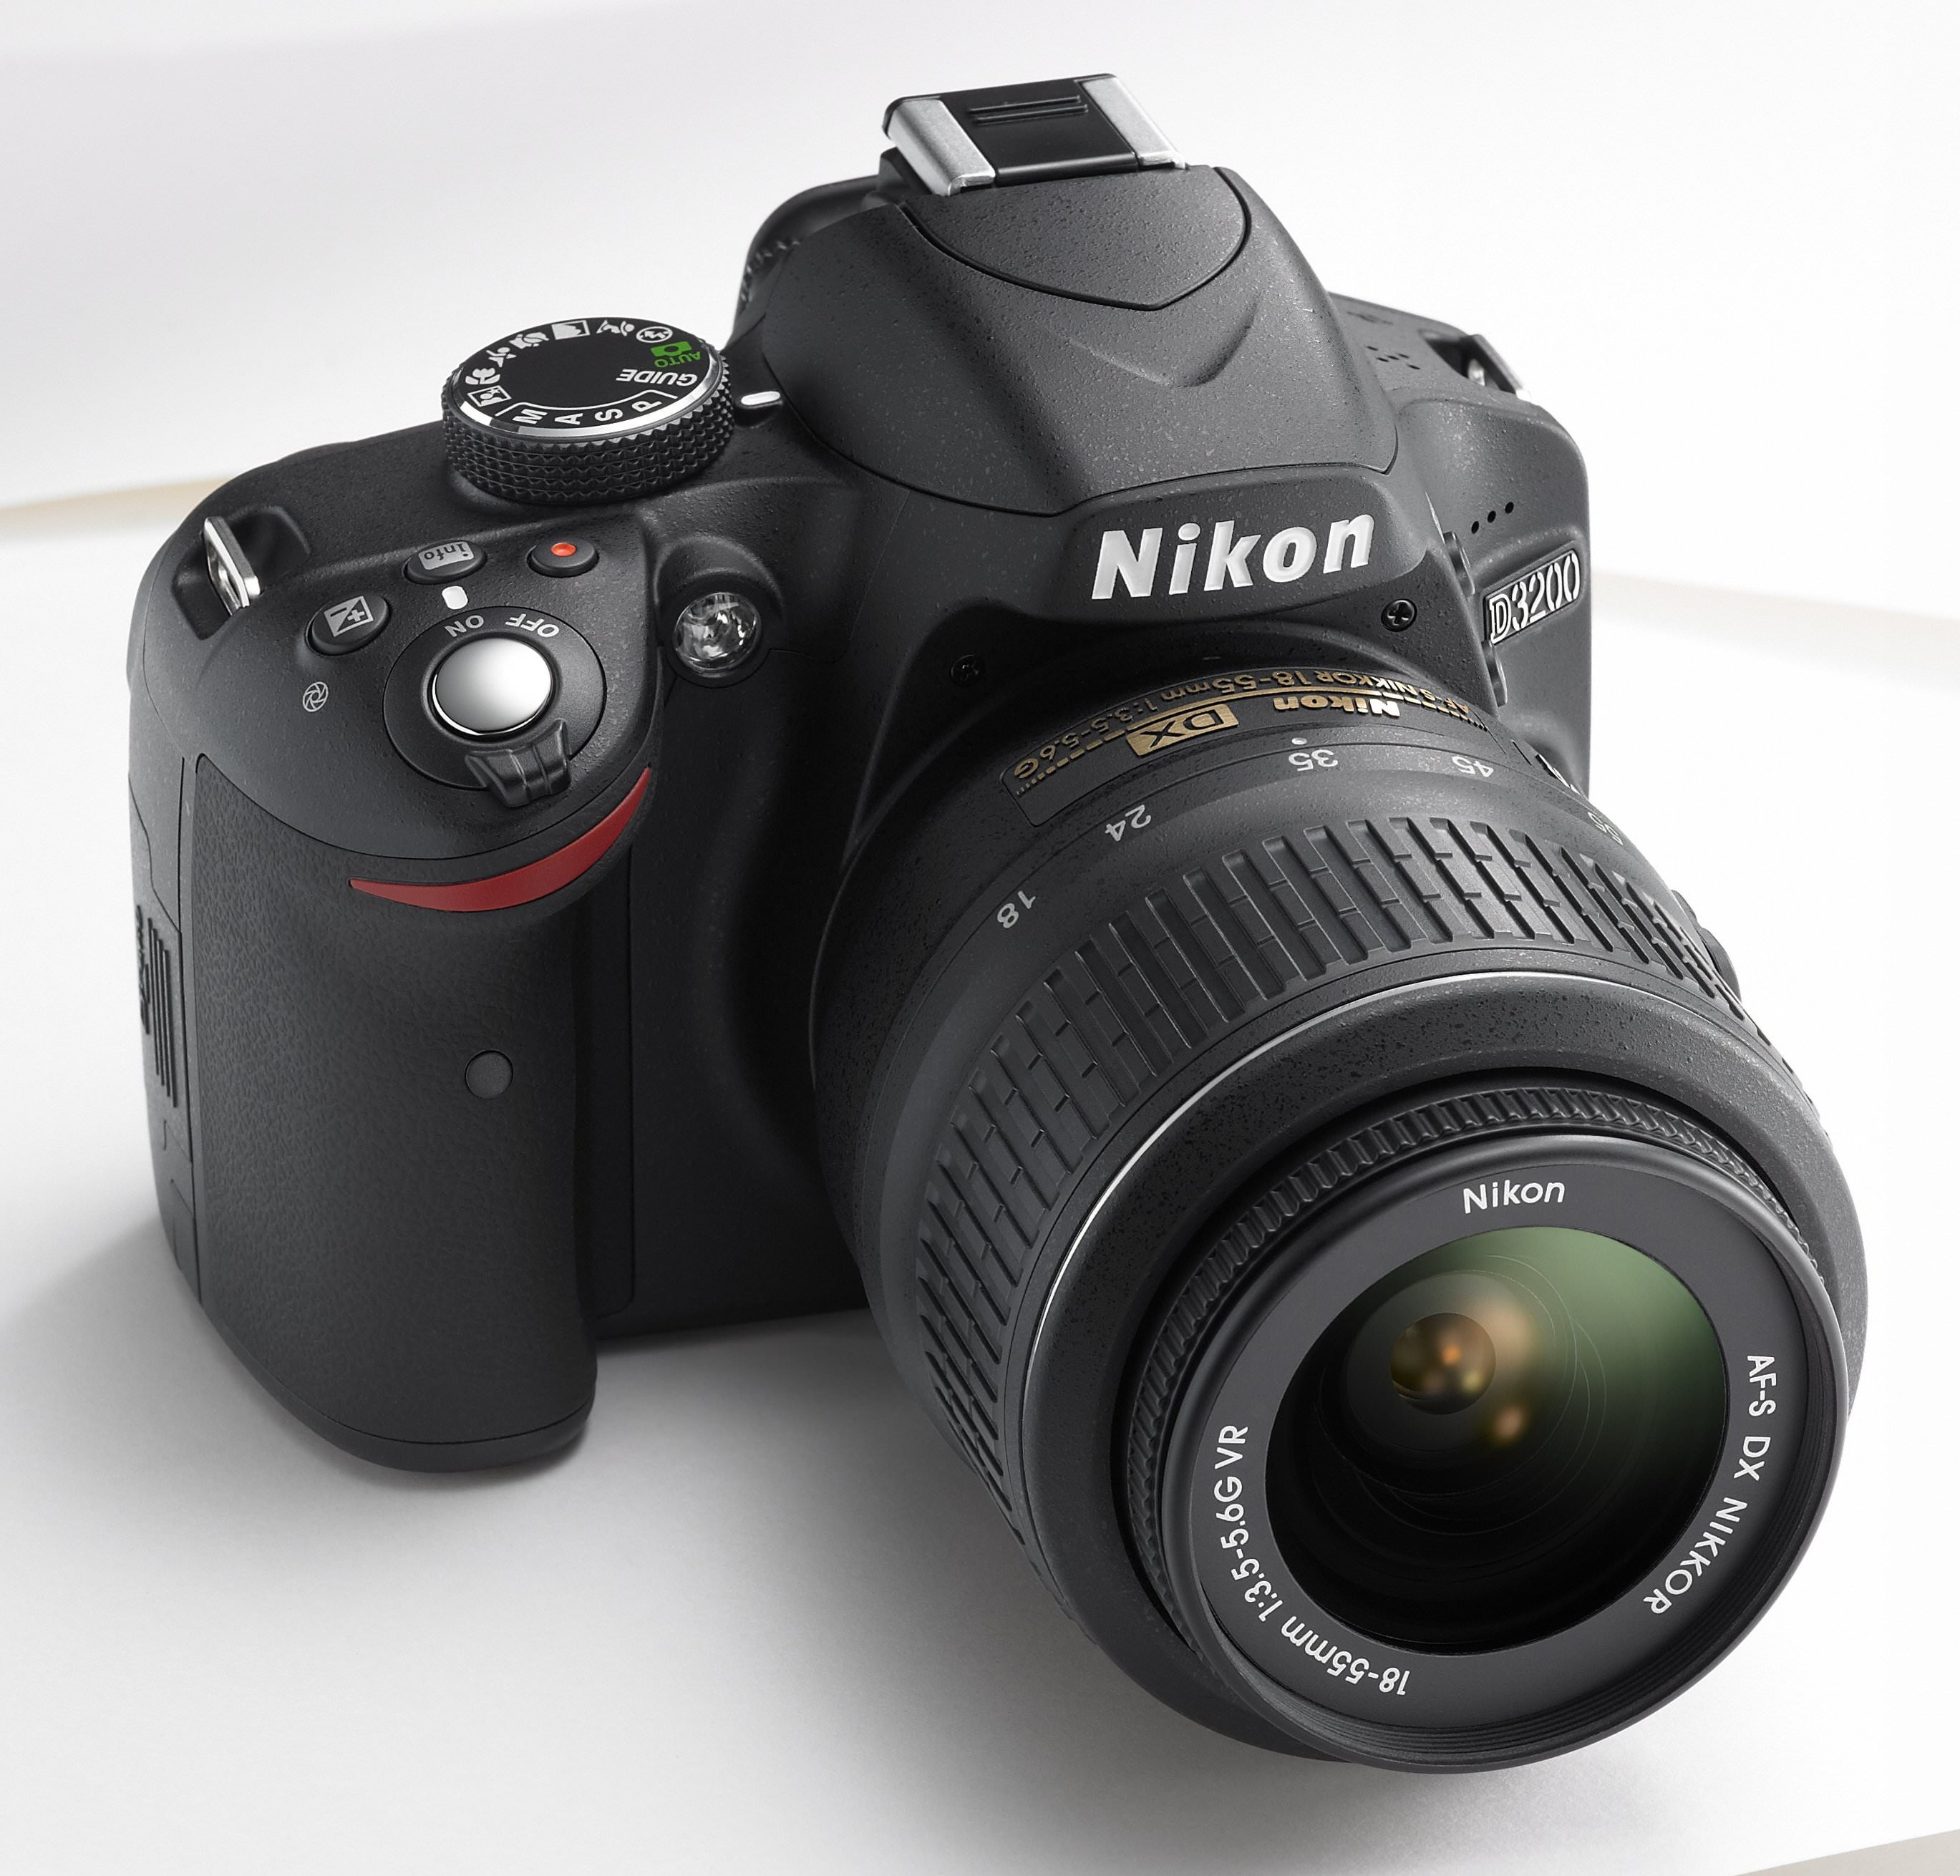 Camera Dslr Meaning Camera new nikon d3200 digital slr released ambience 2